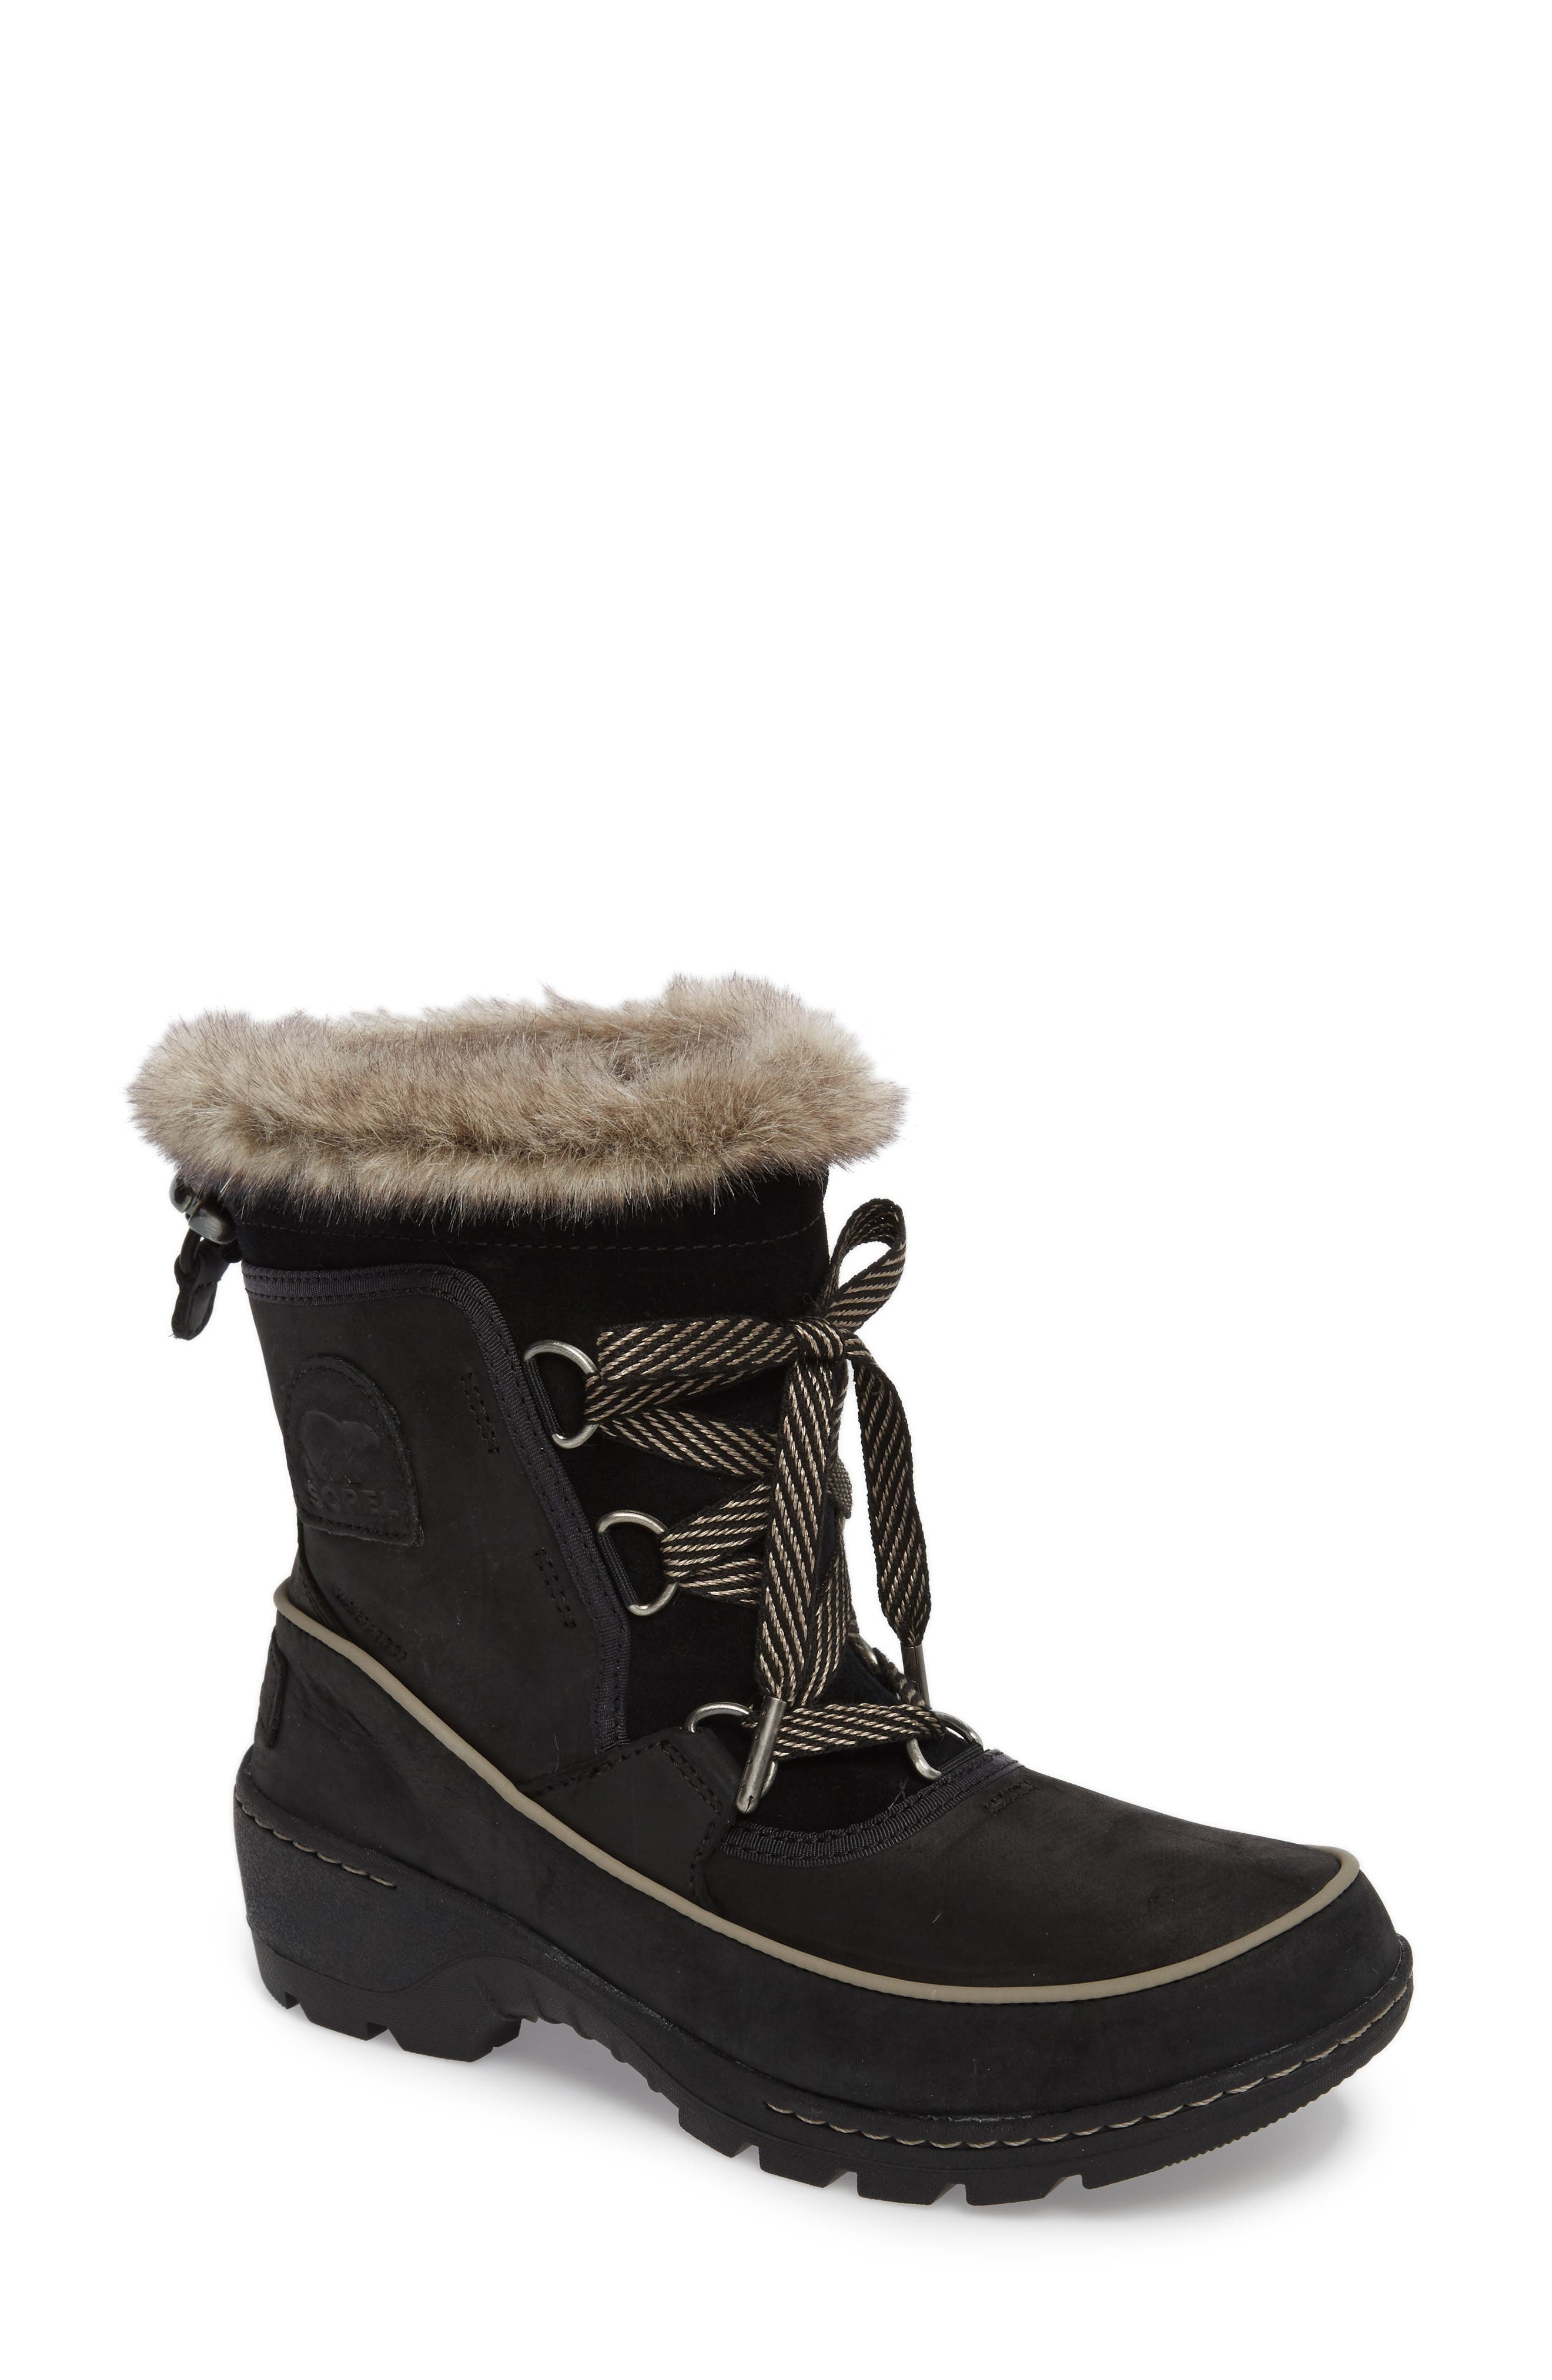 Tivoli II Insulated Winter Boot with Faux Fur Trim,                         Main,                         color,